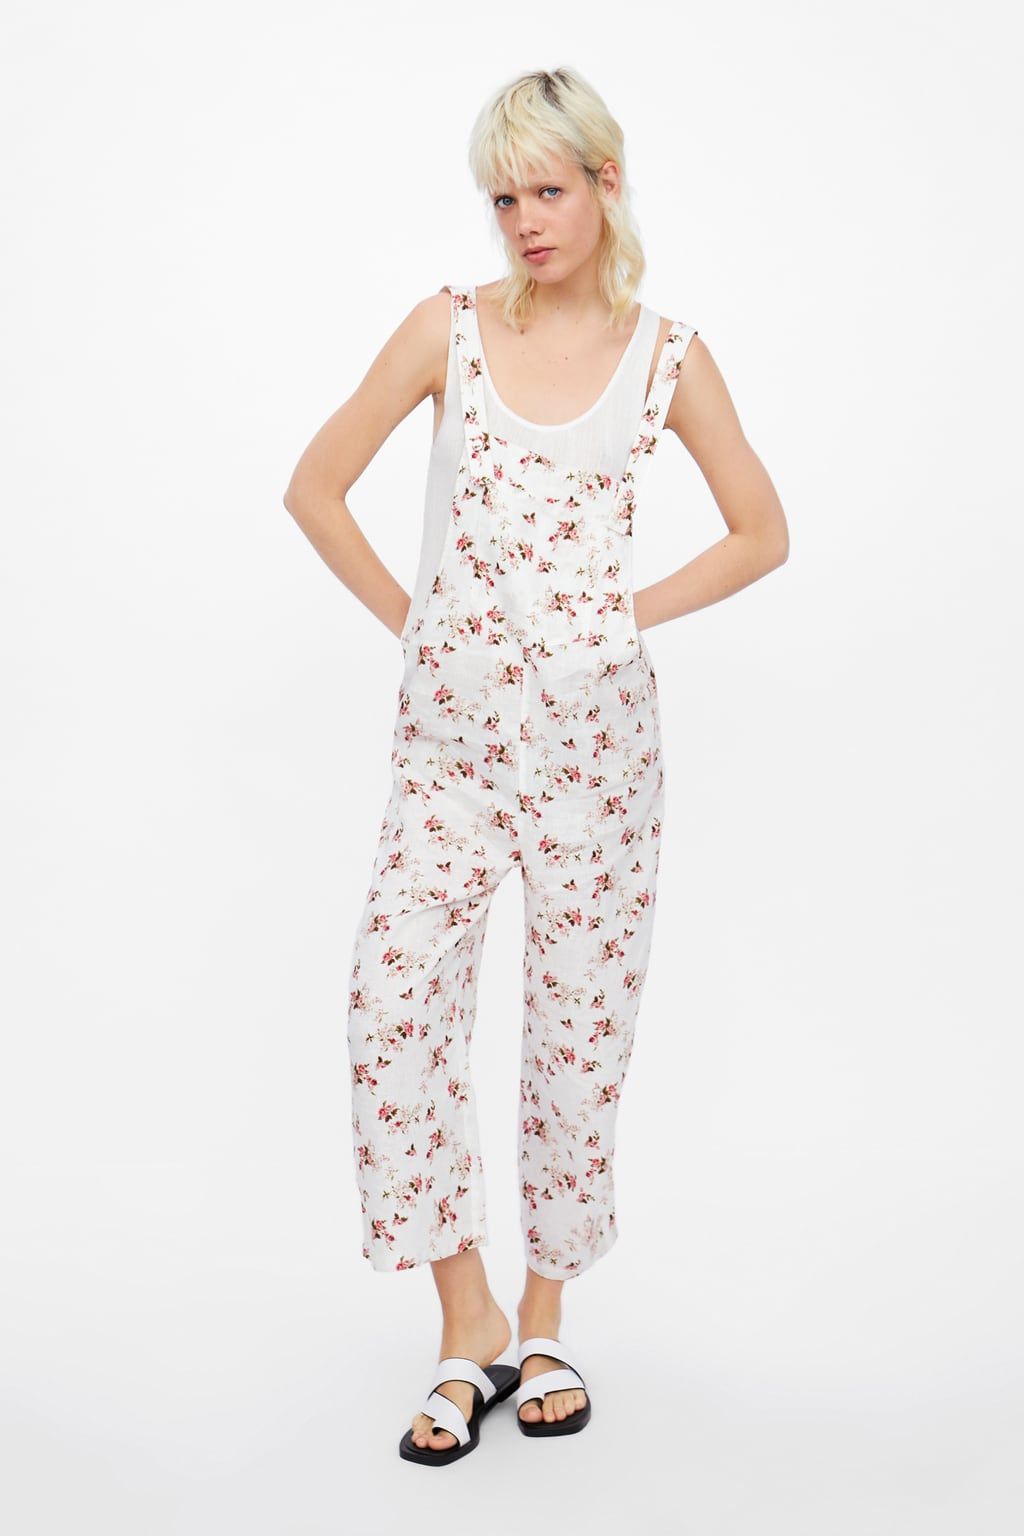 c4b4857c6dda Linen floral print jumpsuit in 2019 | fashion lust | Floral prints ...